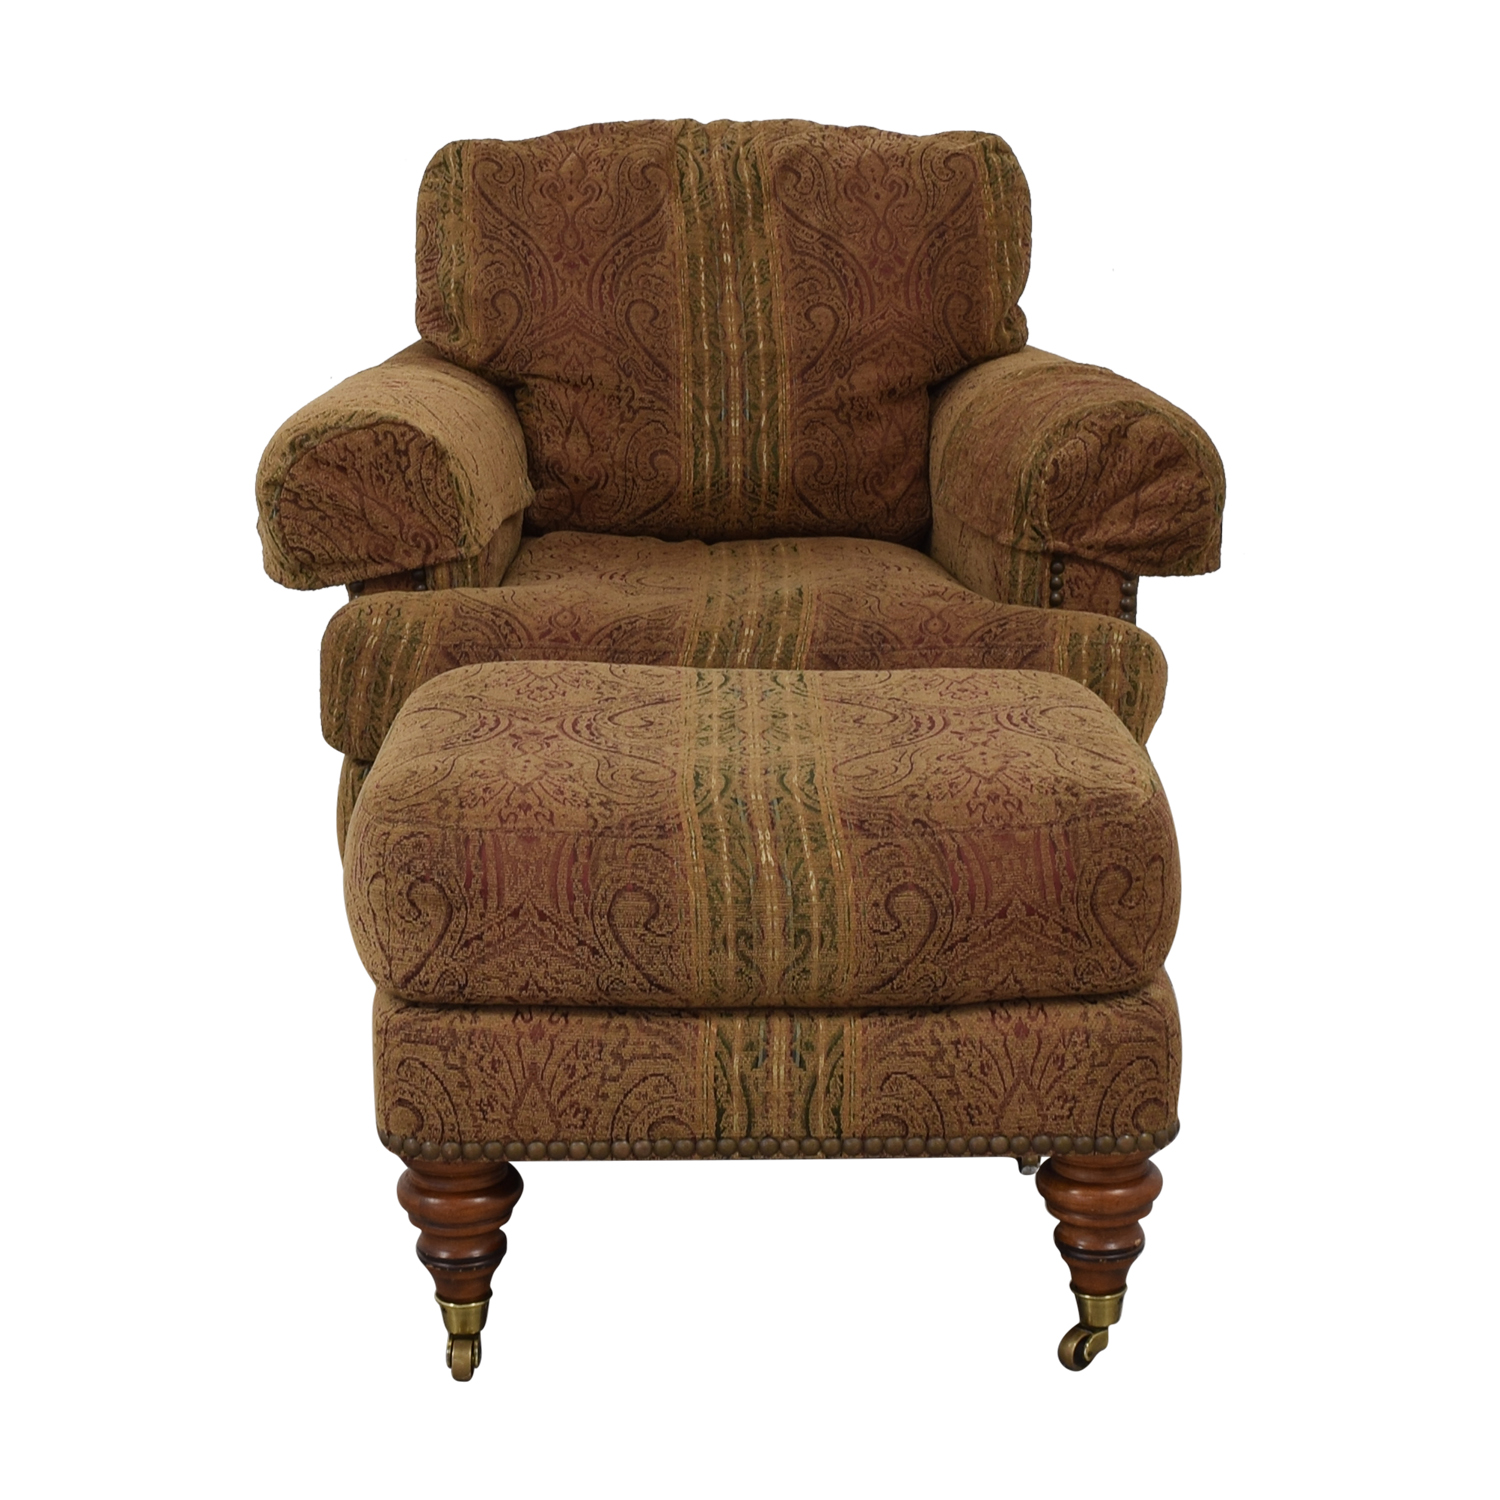 Lillian August Lillian August Upholstered Chair with Ottoman Chairs